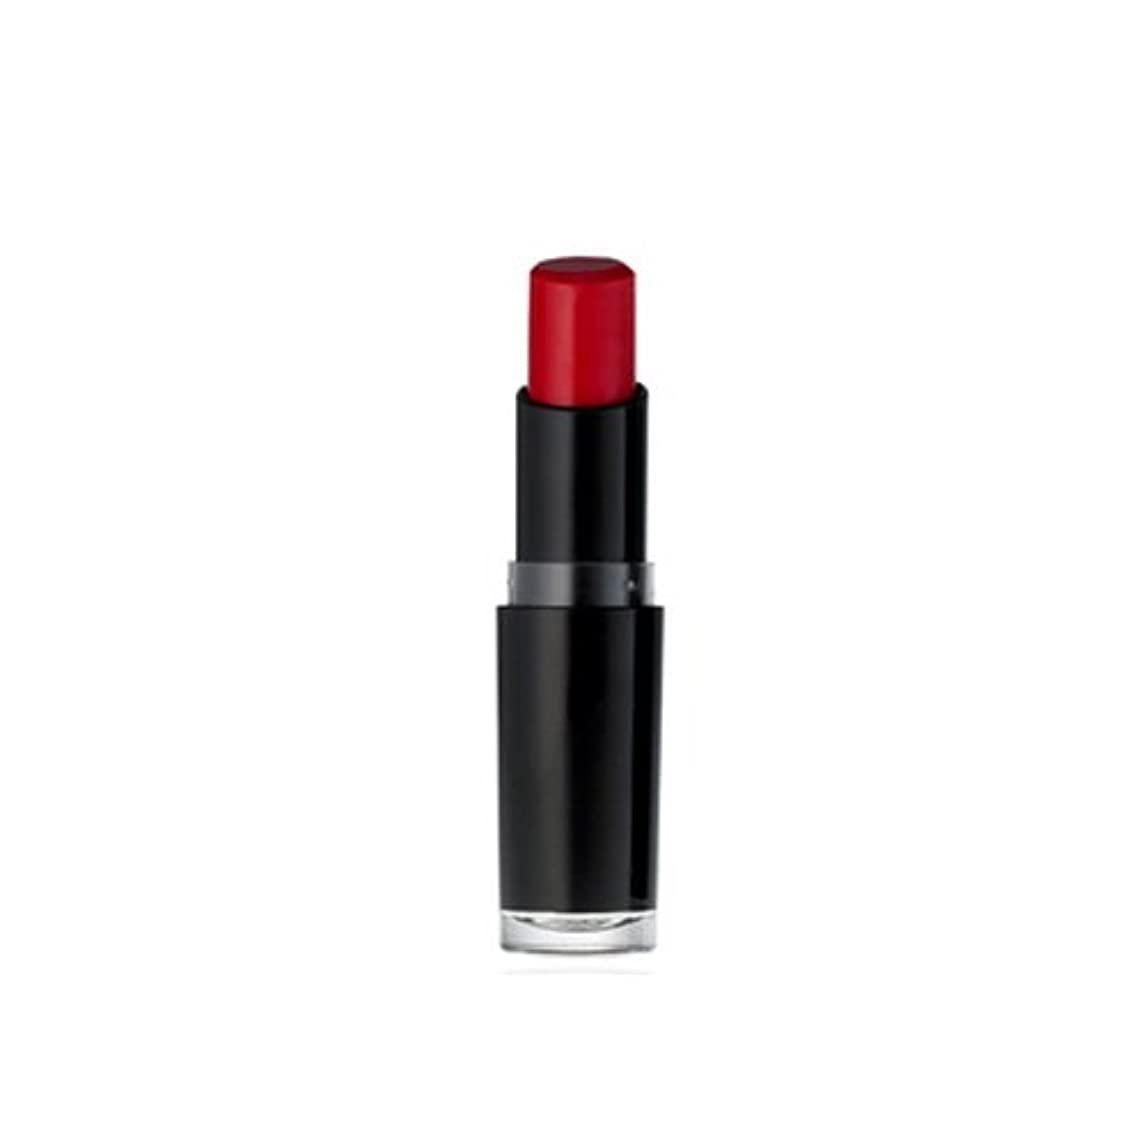 WET N WILD Mega Last Matte Lip Cover - Stoplight Red (並行輸入品)